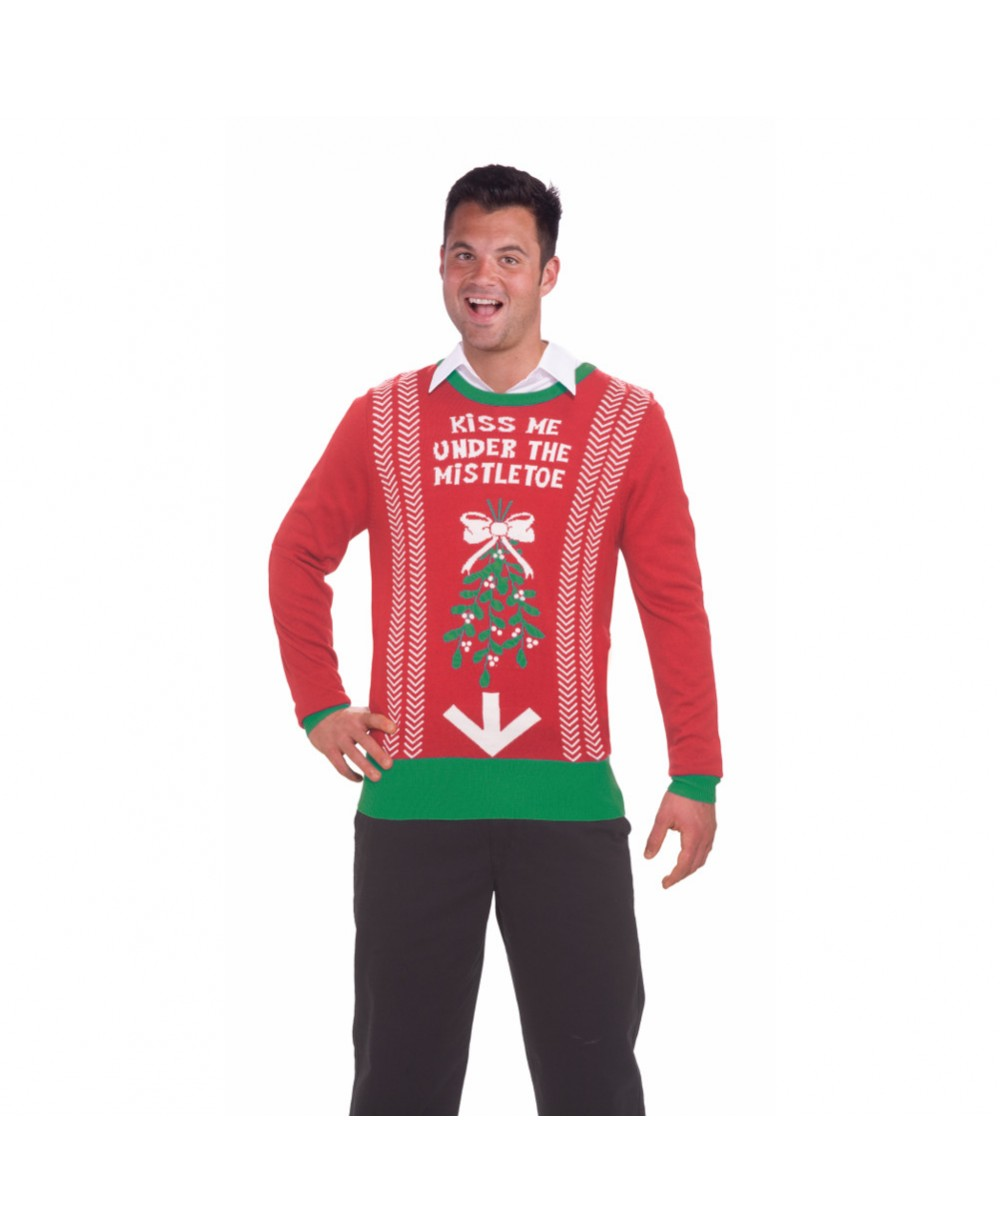 Mens Christmas Sweaters.Kiss Me Under The Mistletoe Ugly Christmas Sweater